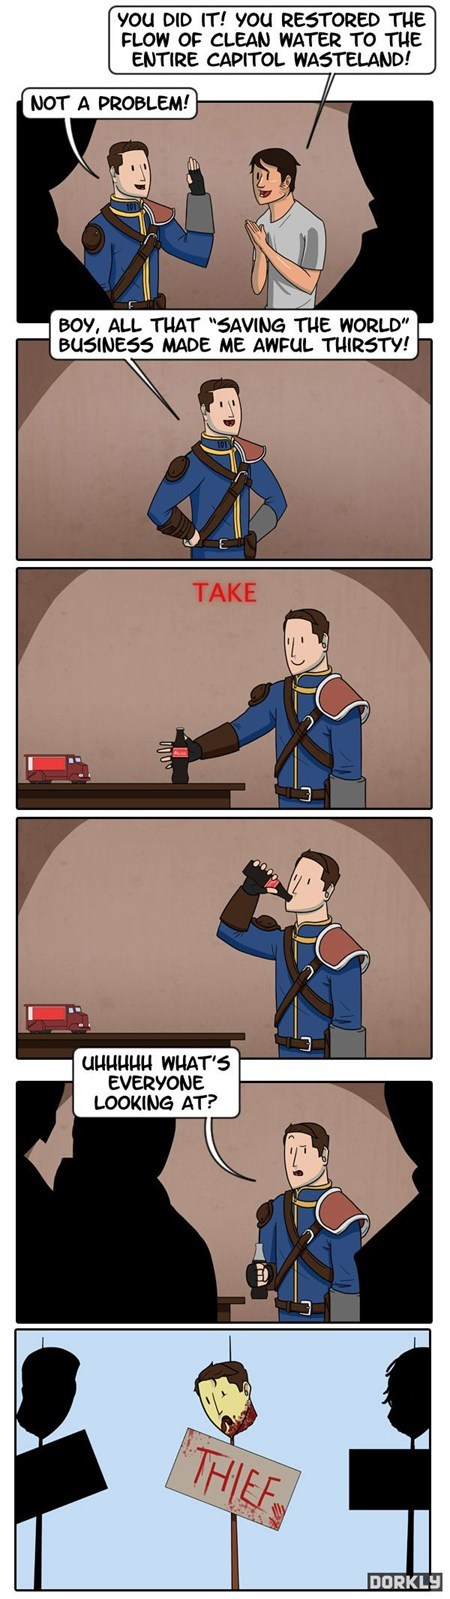 fallout logic nuka cola stealing video games - 6440920320